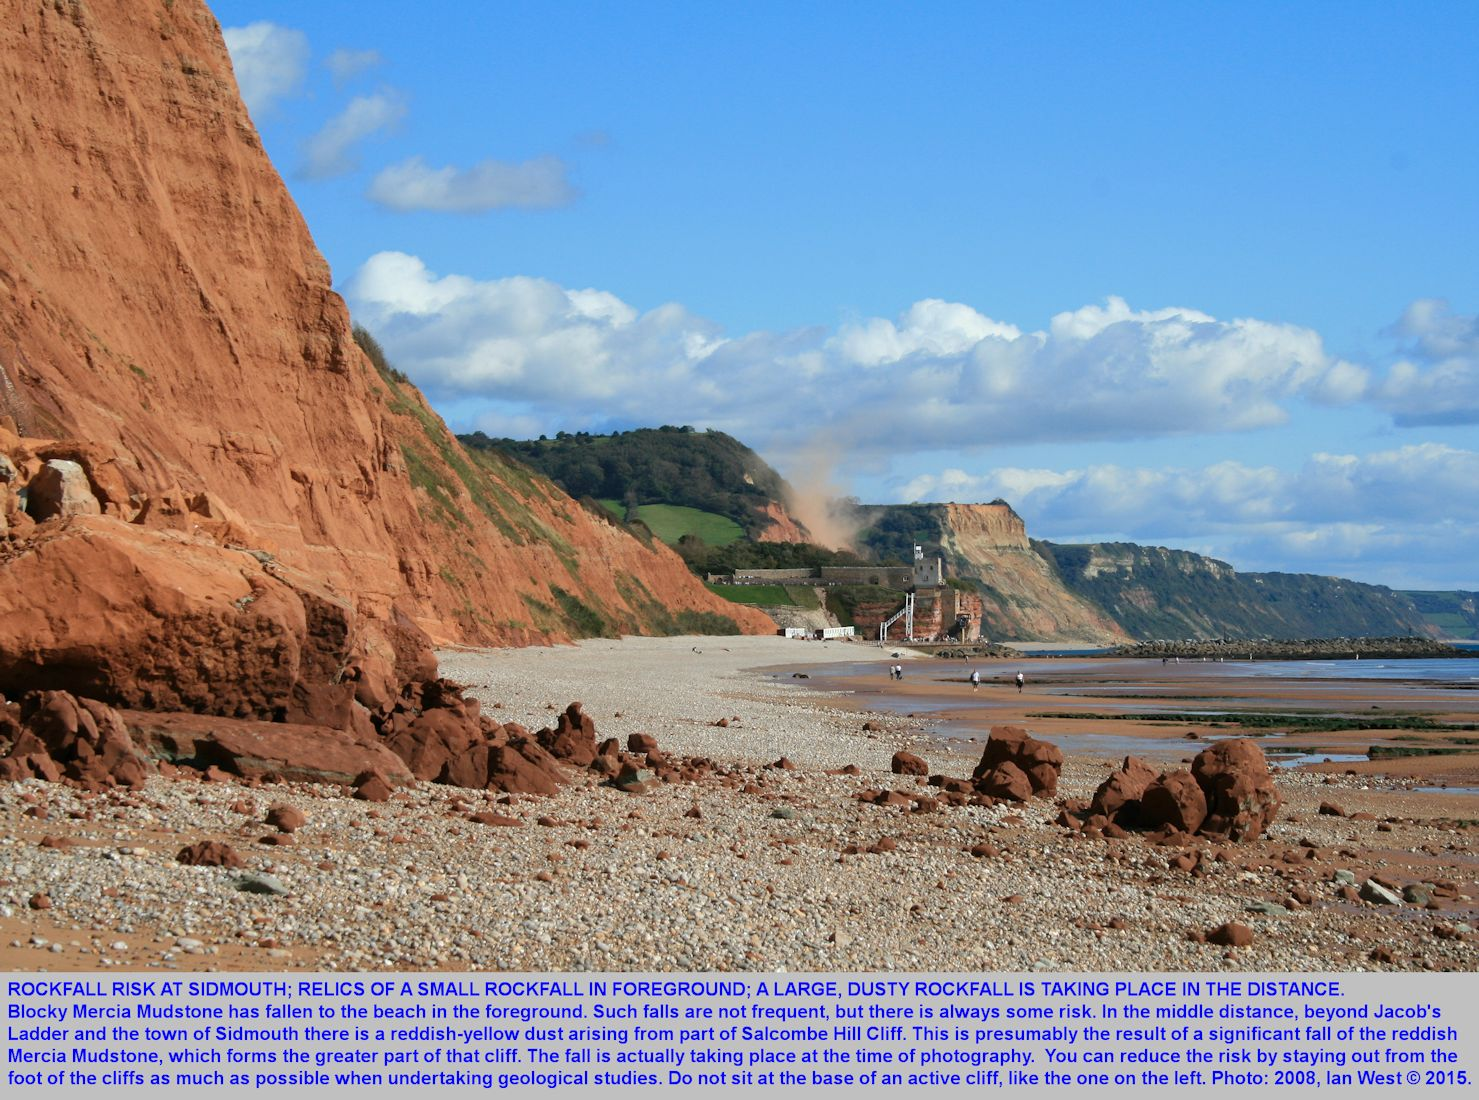 Sidmouth, Devon, rockfall hazard, with relics of an old rockfall in the foreground and an active rockfall in the distance, raising dust